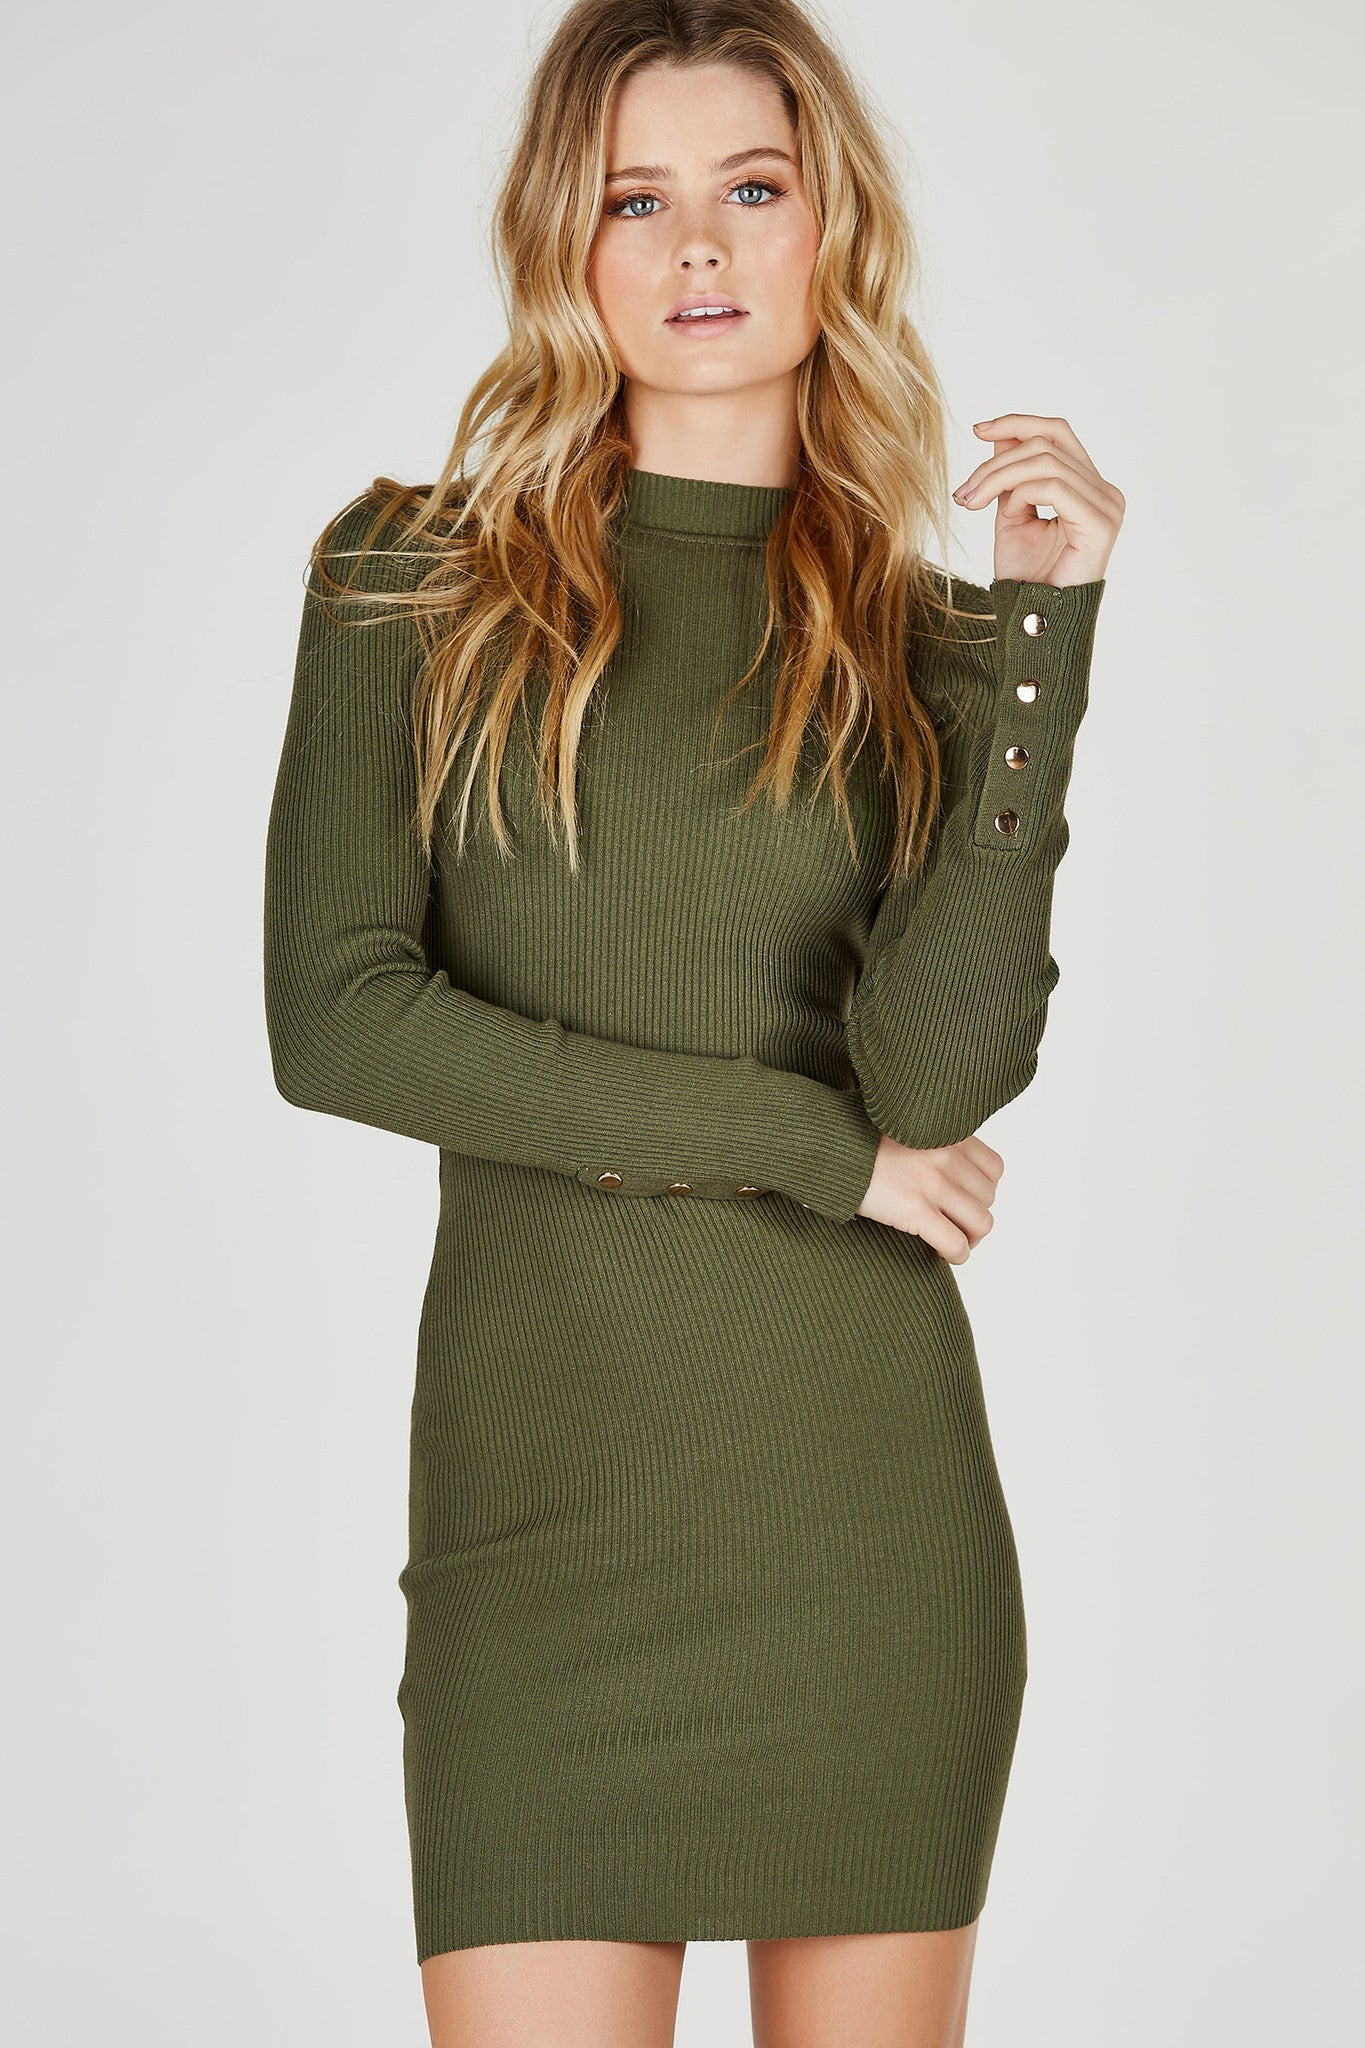 Simple and clean, this long sleeve midi dress is great to many occasions! Ribbed throughout for a stretchy, flattering fit. High neckline with a clean straight hem. Button detailing on each sleeve keeps the look from being boring.